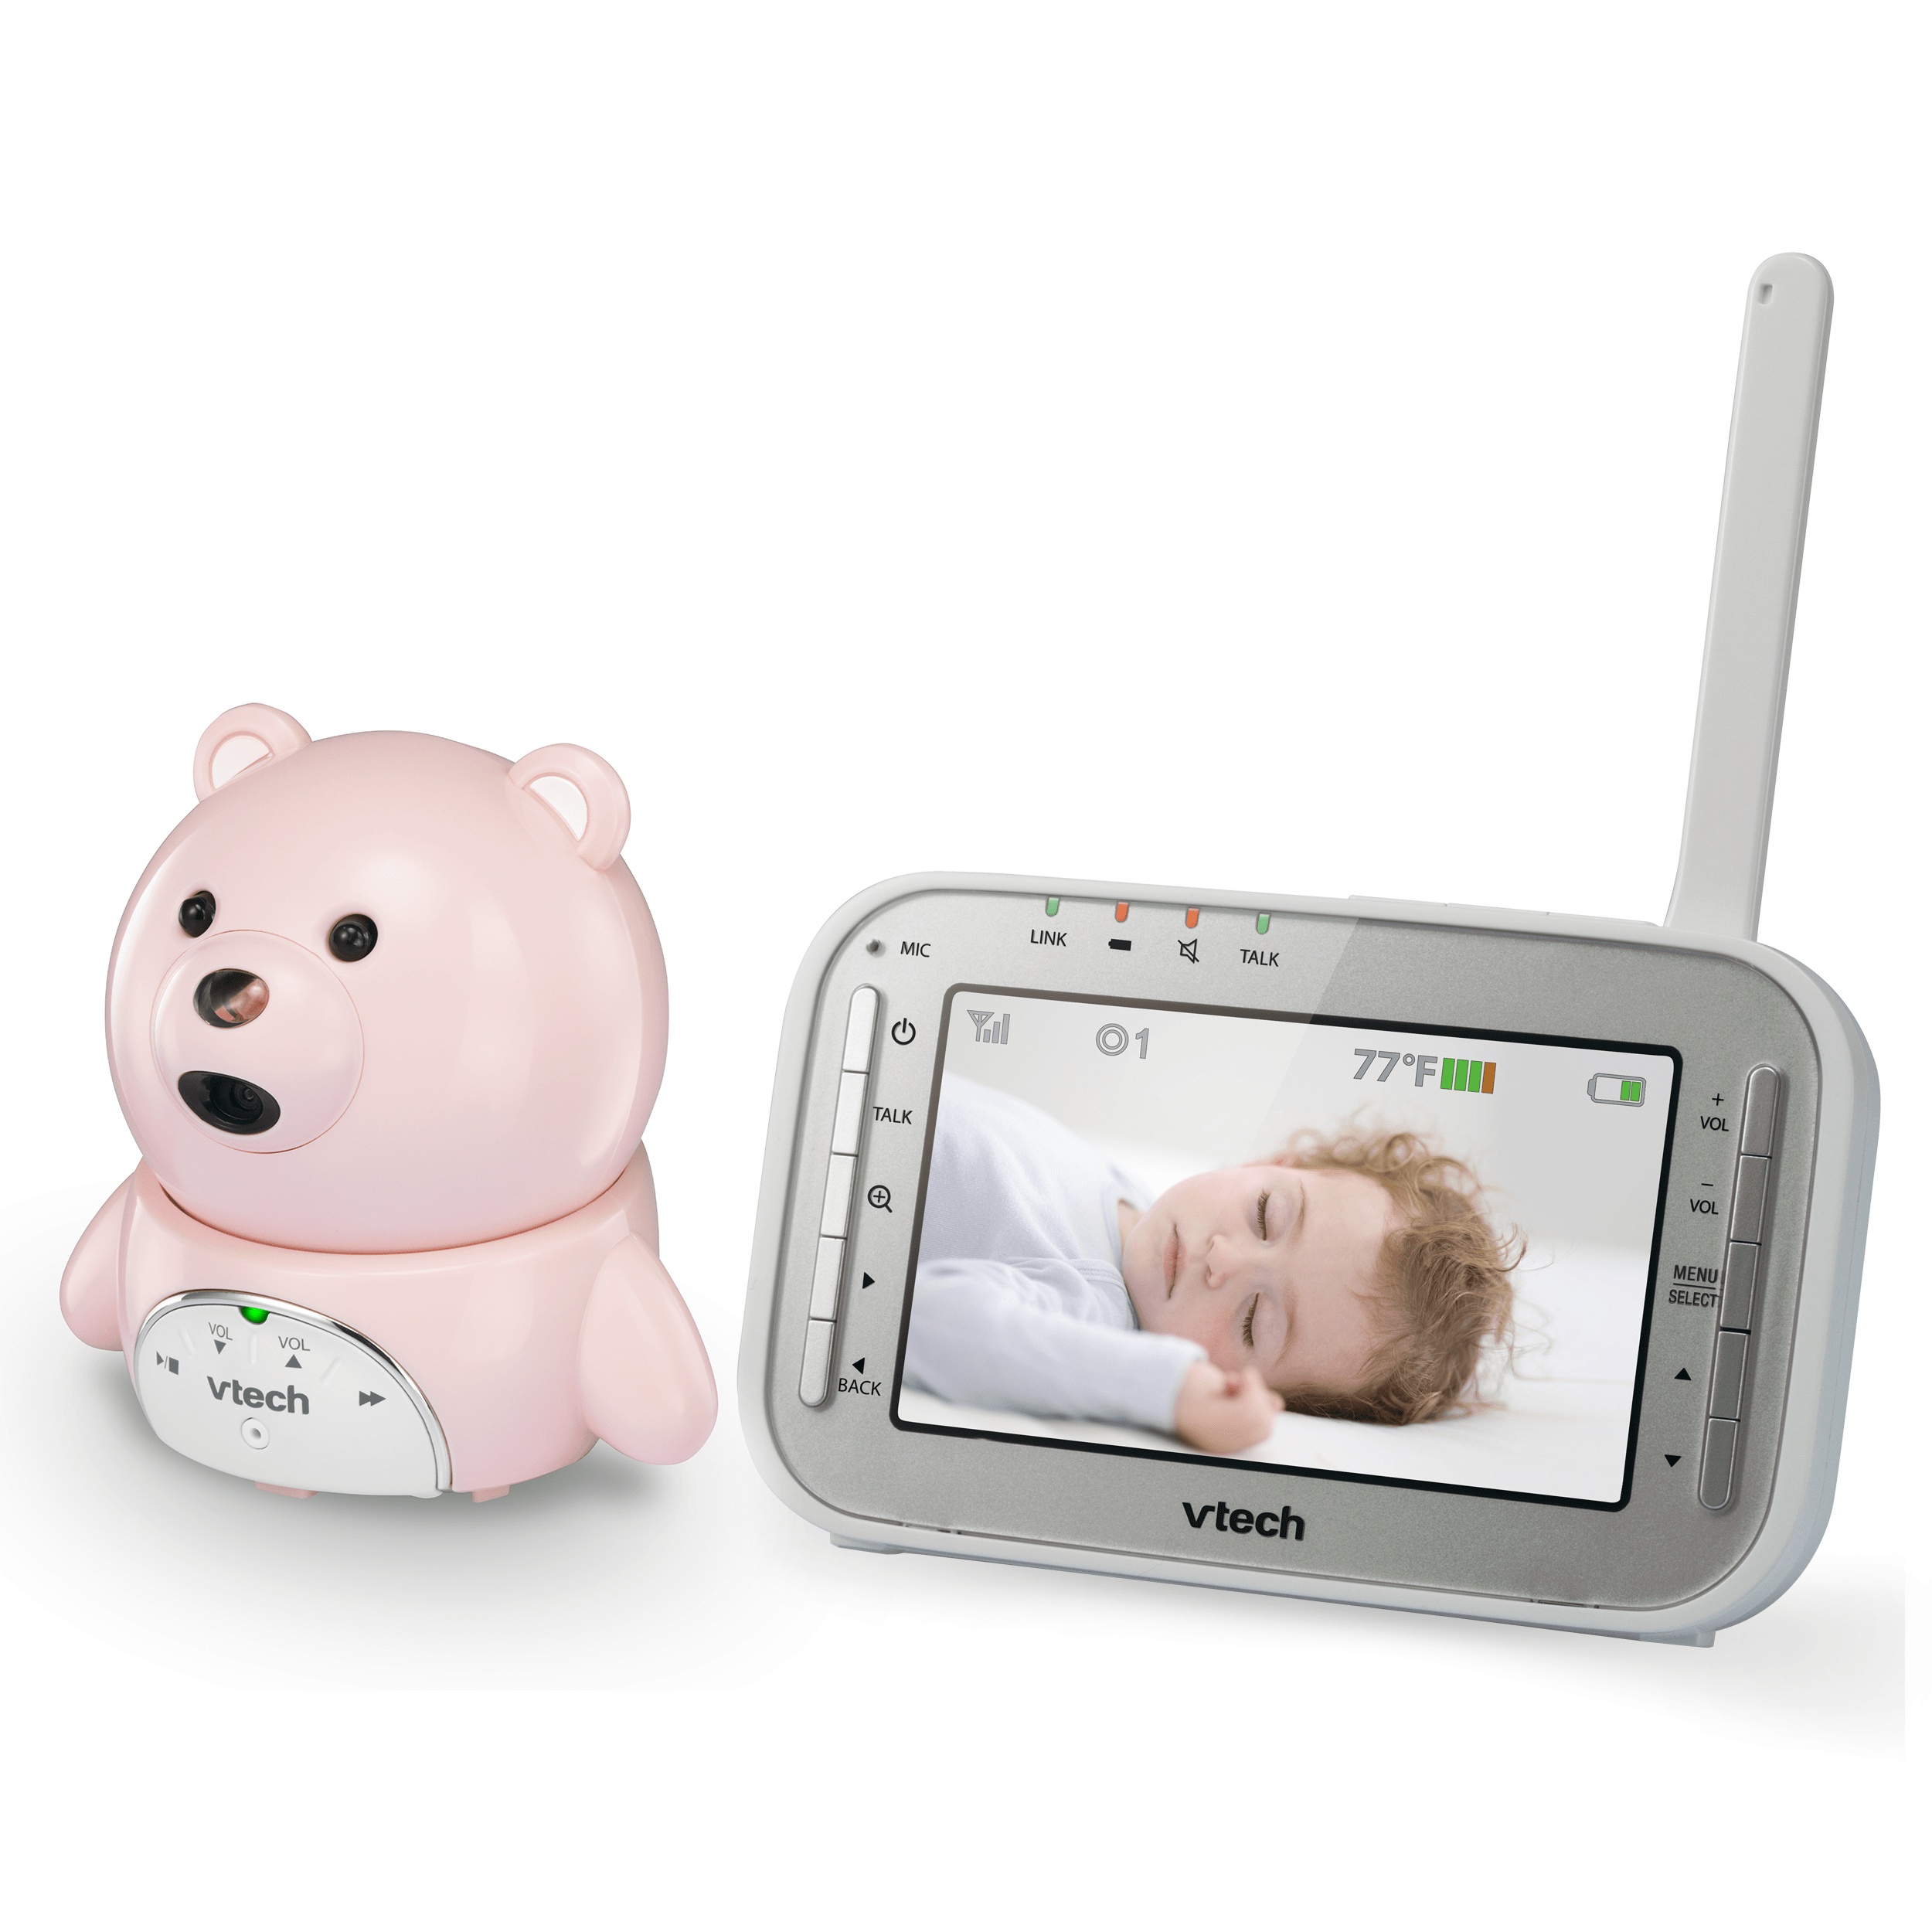 2 camera bear and owl expandable digital video baby monitor with automatic night vision vm346. Black Bedroom Furniture Sets. Home Design Ideas